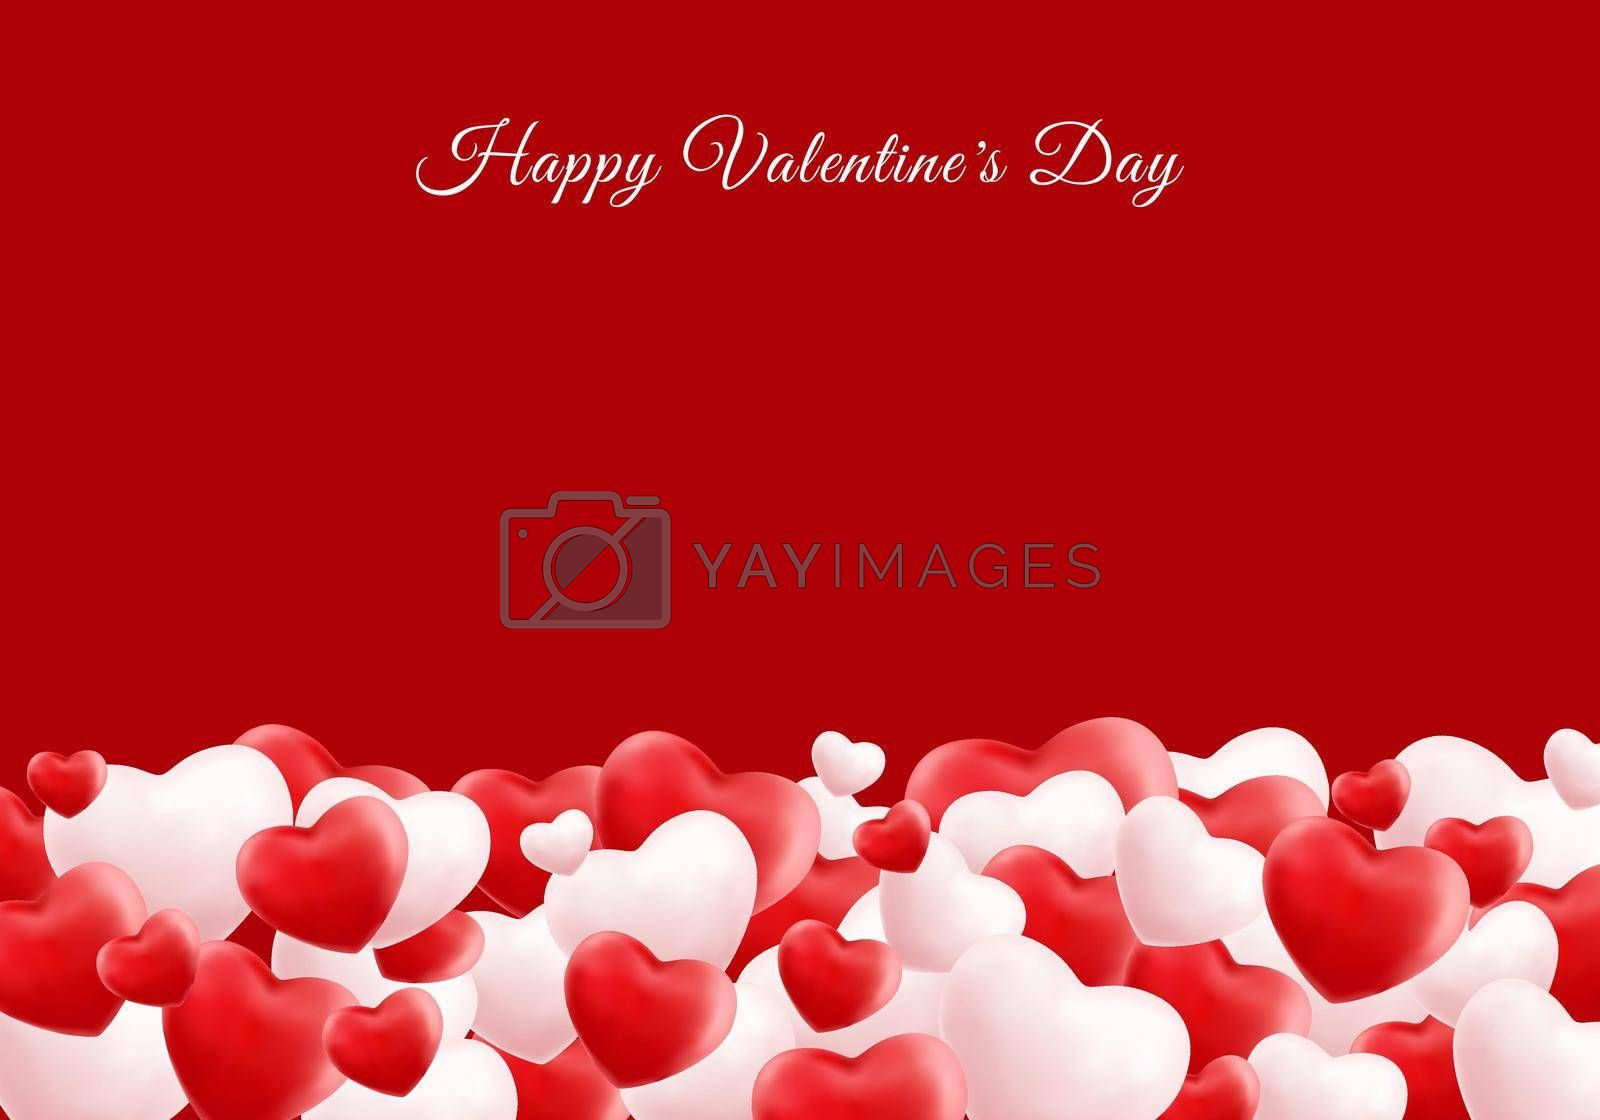 Happy valentine day 3D realistic red and white many hearts with space for your text. You can use for greetings card, banner web, invitation, poster, brochure, etc. Vector illustration